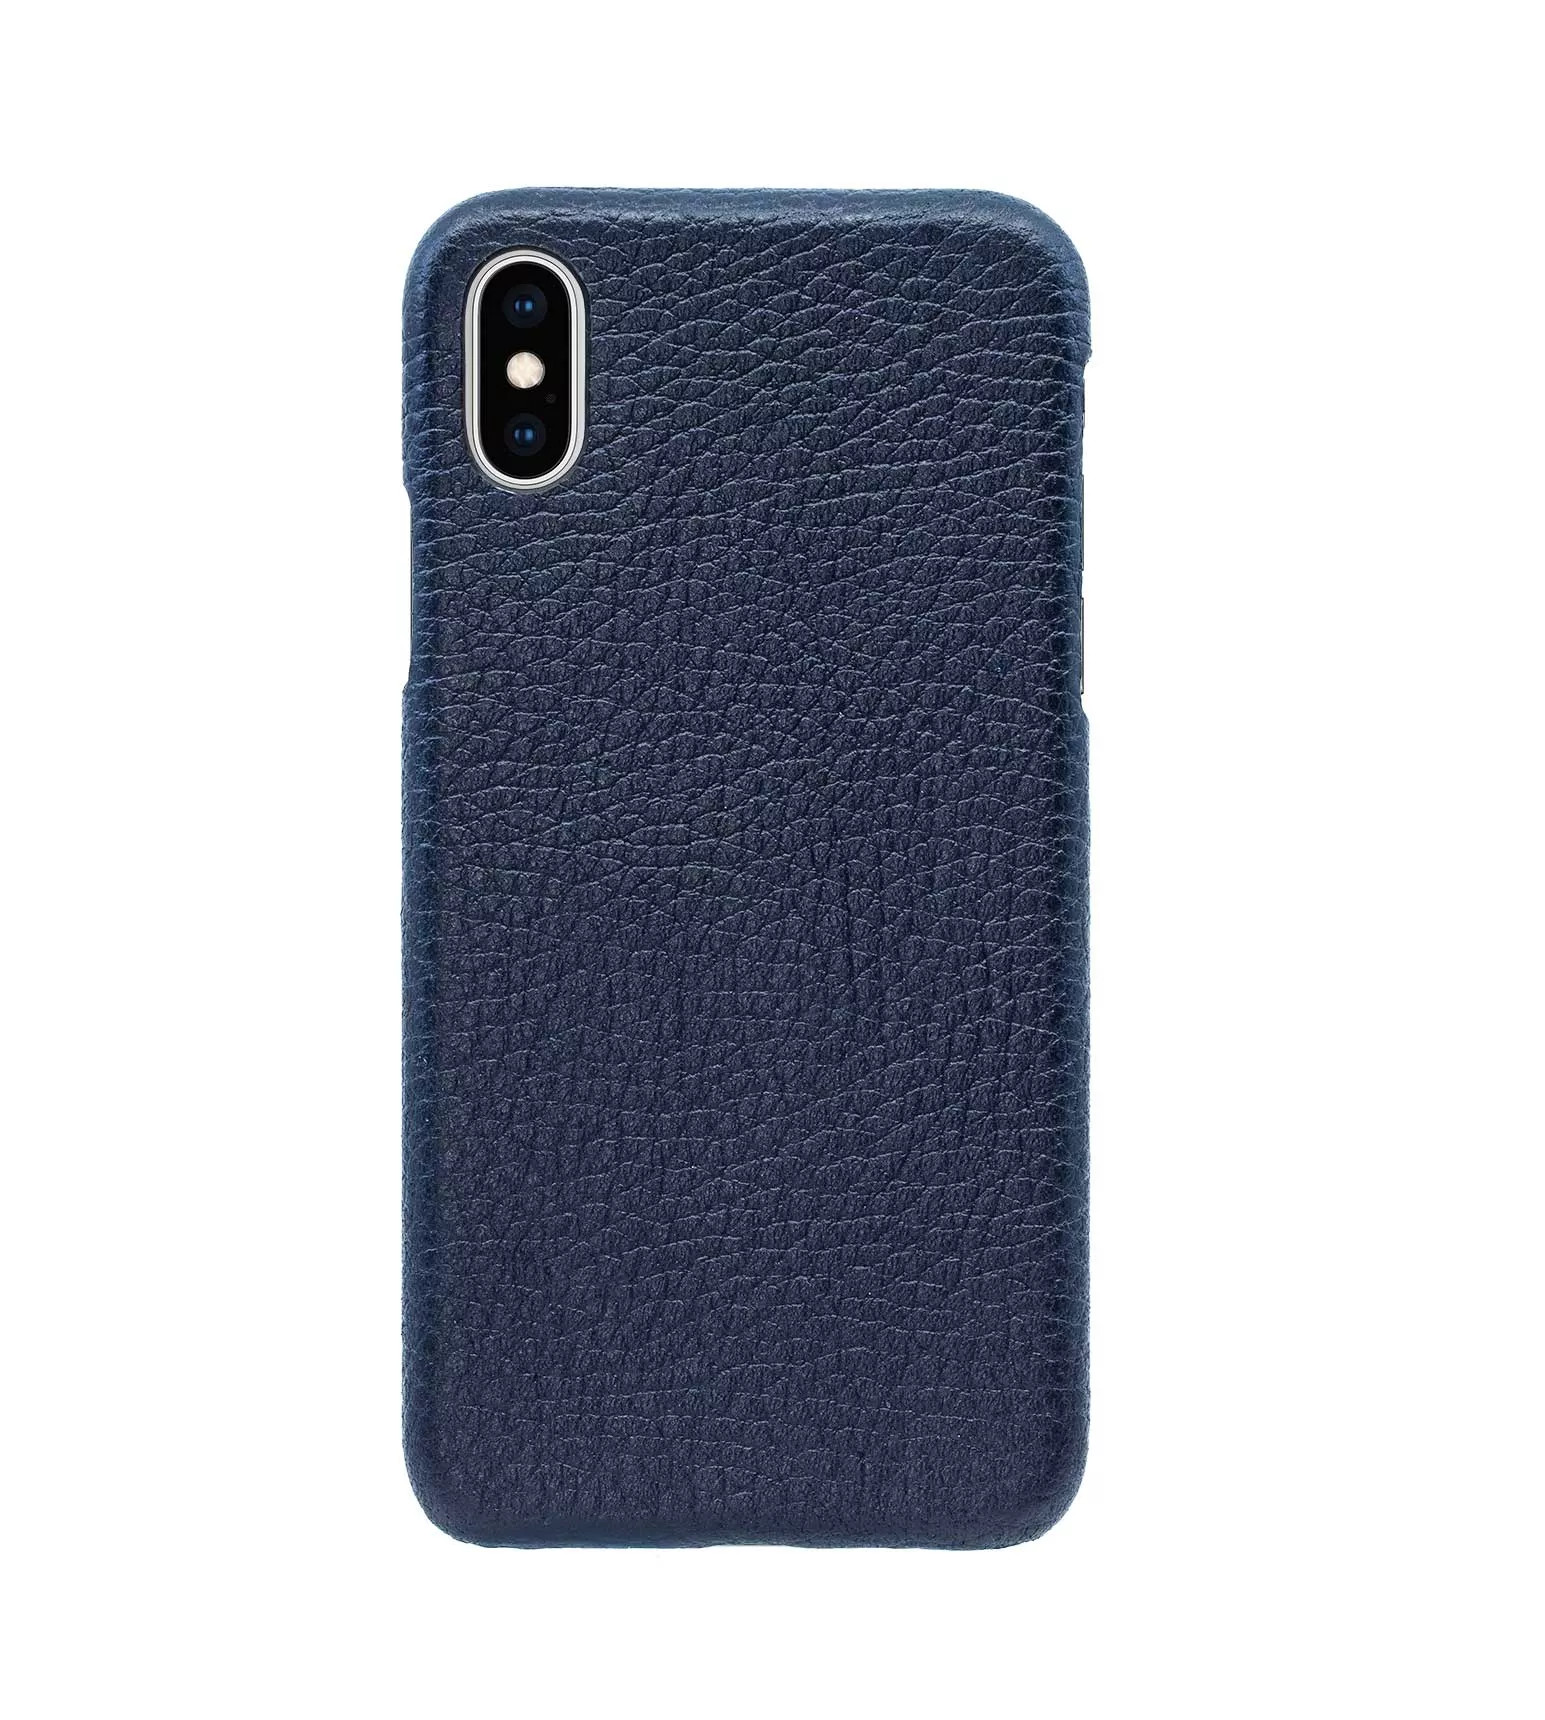 Купить Чехол Natural Cow Hermes Leather Case для iPhone X/XS - Темно-синий (Dark Blue) в Сочи